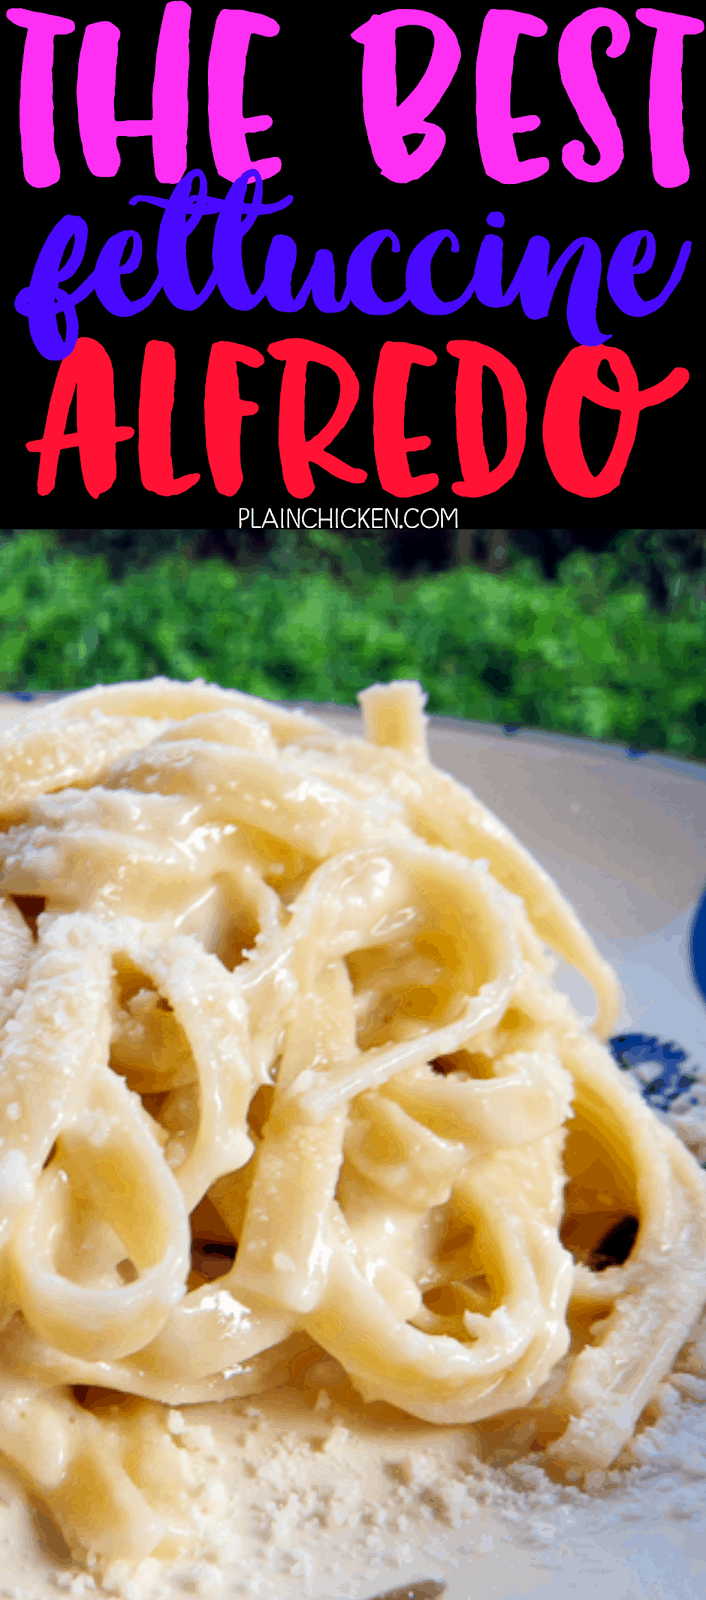 THE BEST Fettuccine Alfredo Sauce Recipe - only 3 ingredients!! Top with grilled chicken for an amazing meal! Ready in minutes!! Better than any restaurant!! A great easy weeknight recipe!